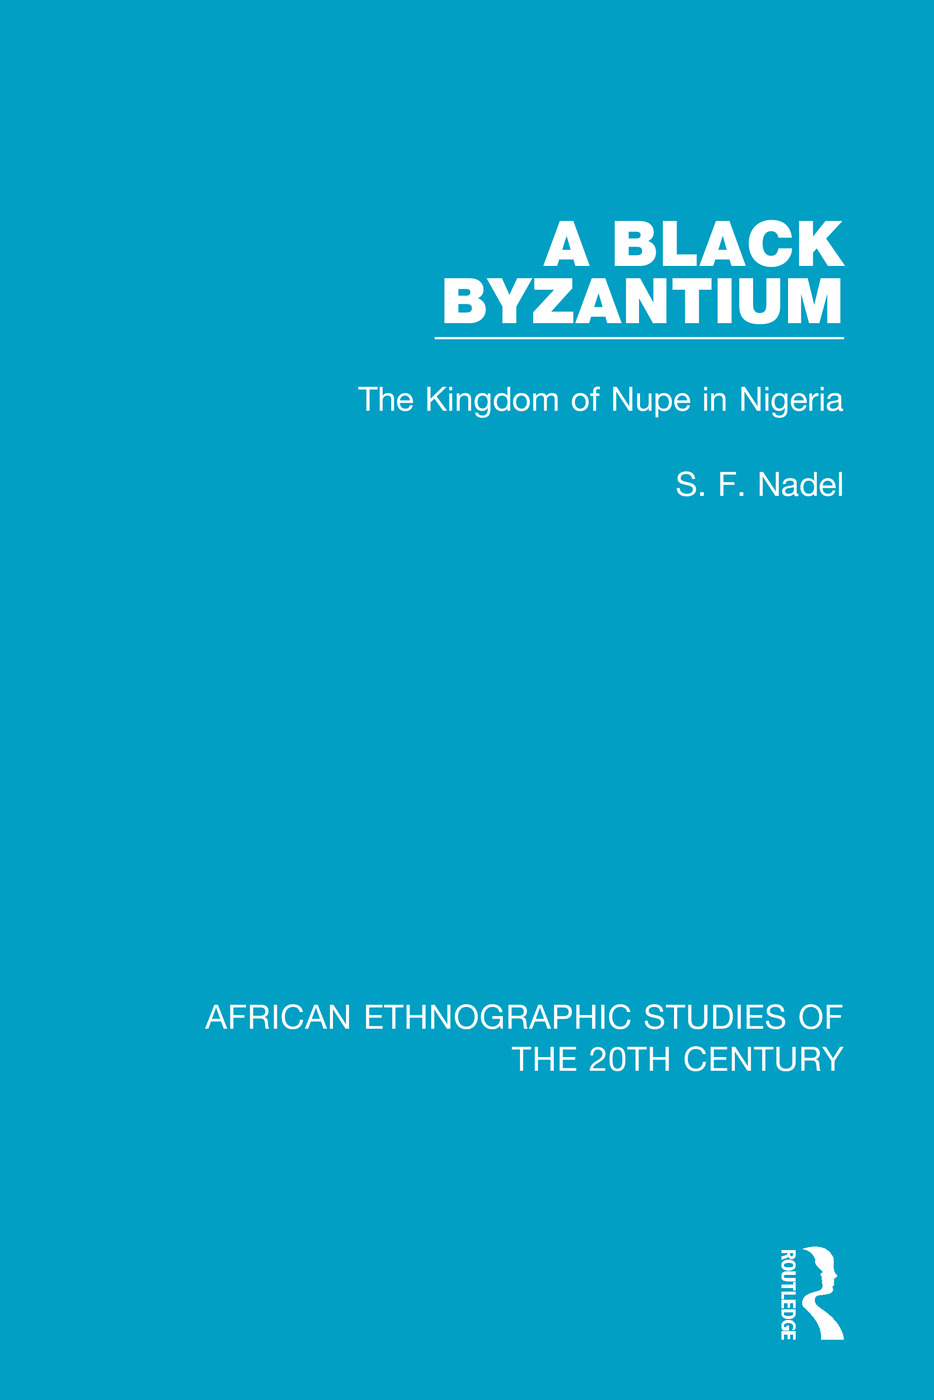 A Black Byzantium: The Kingdom of Nupe in Nigeria book cover